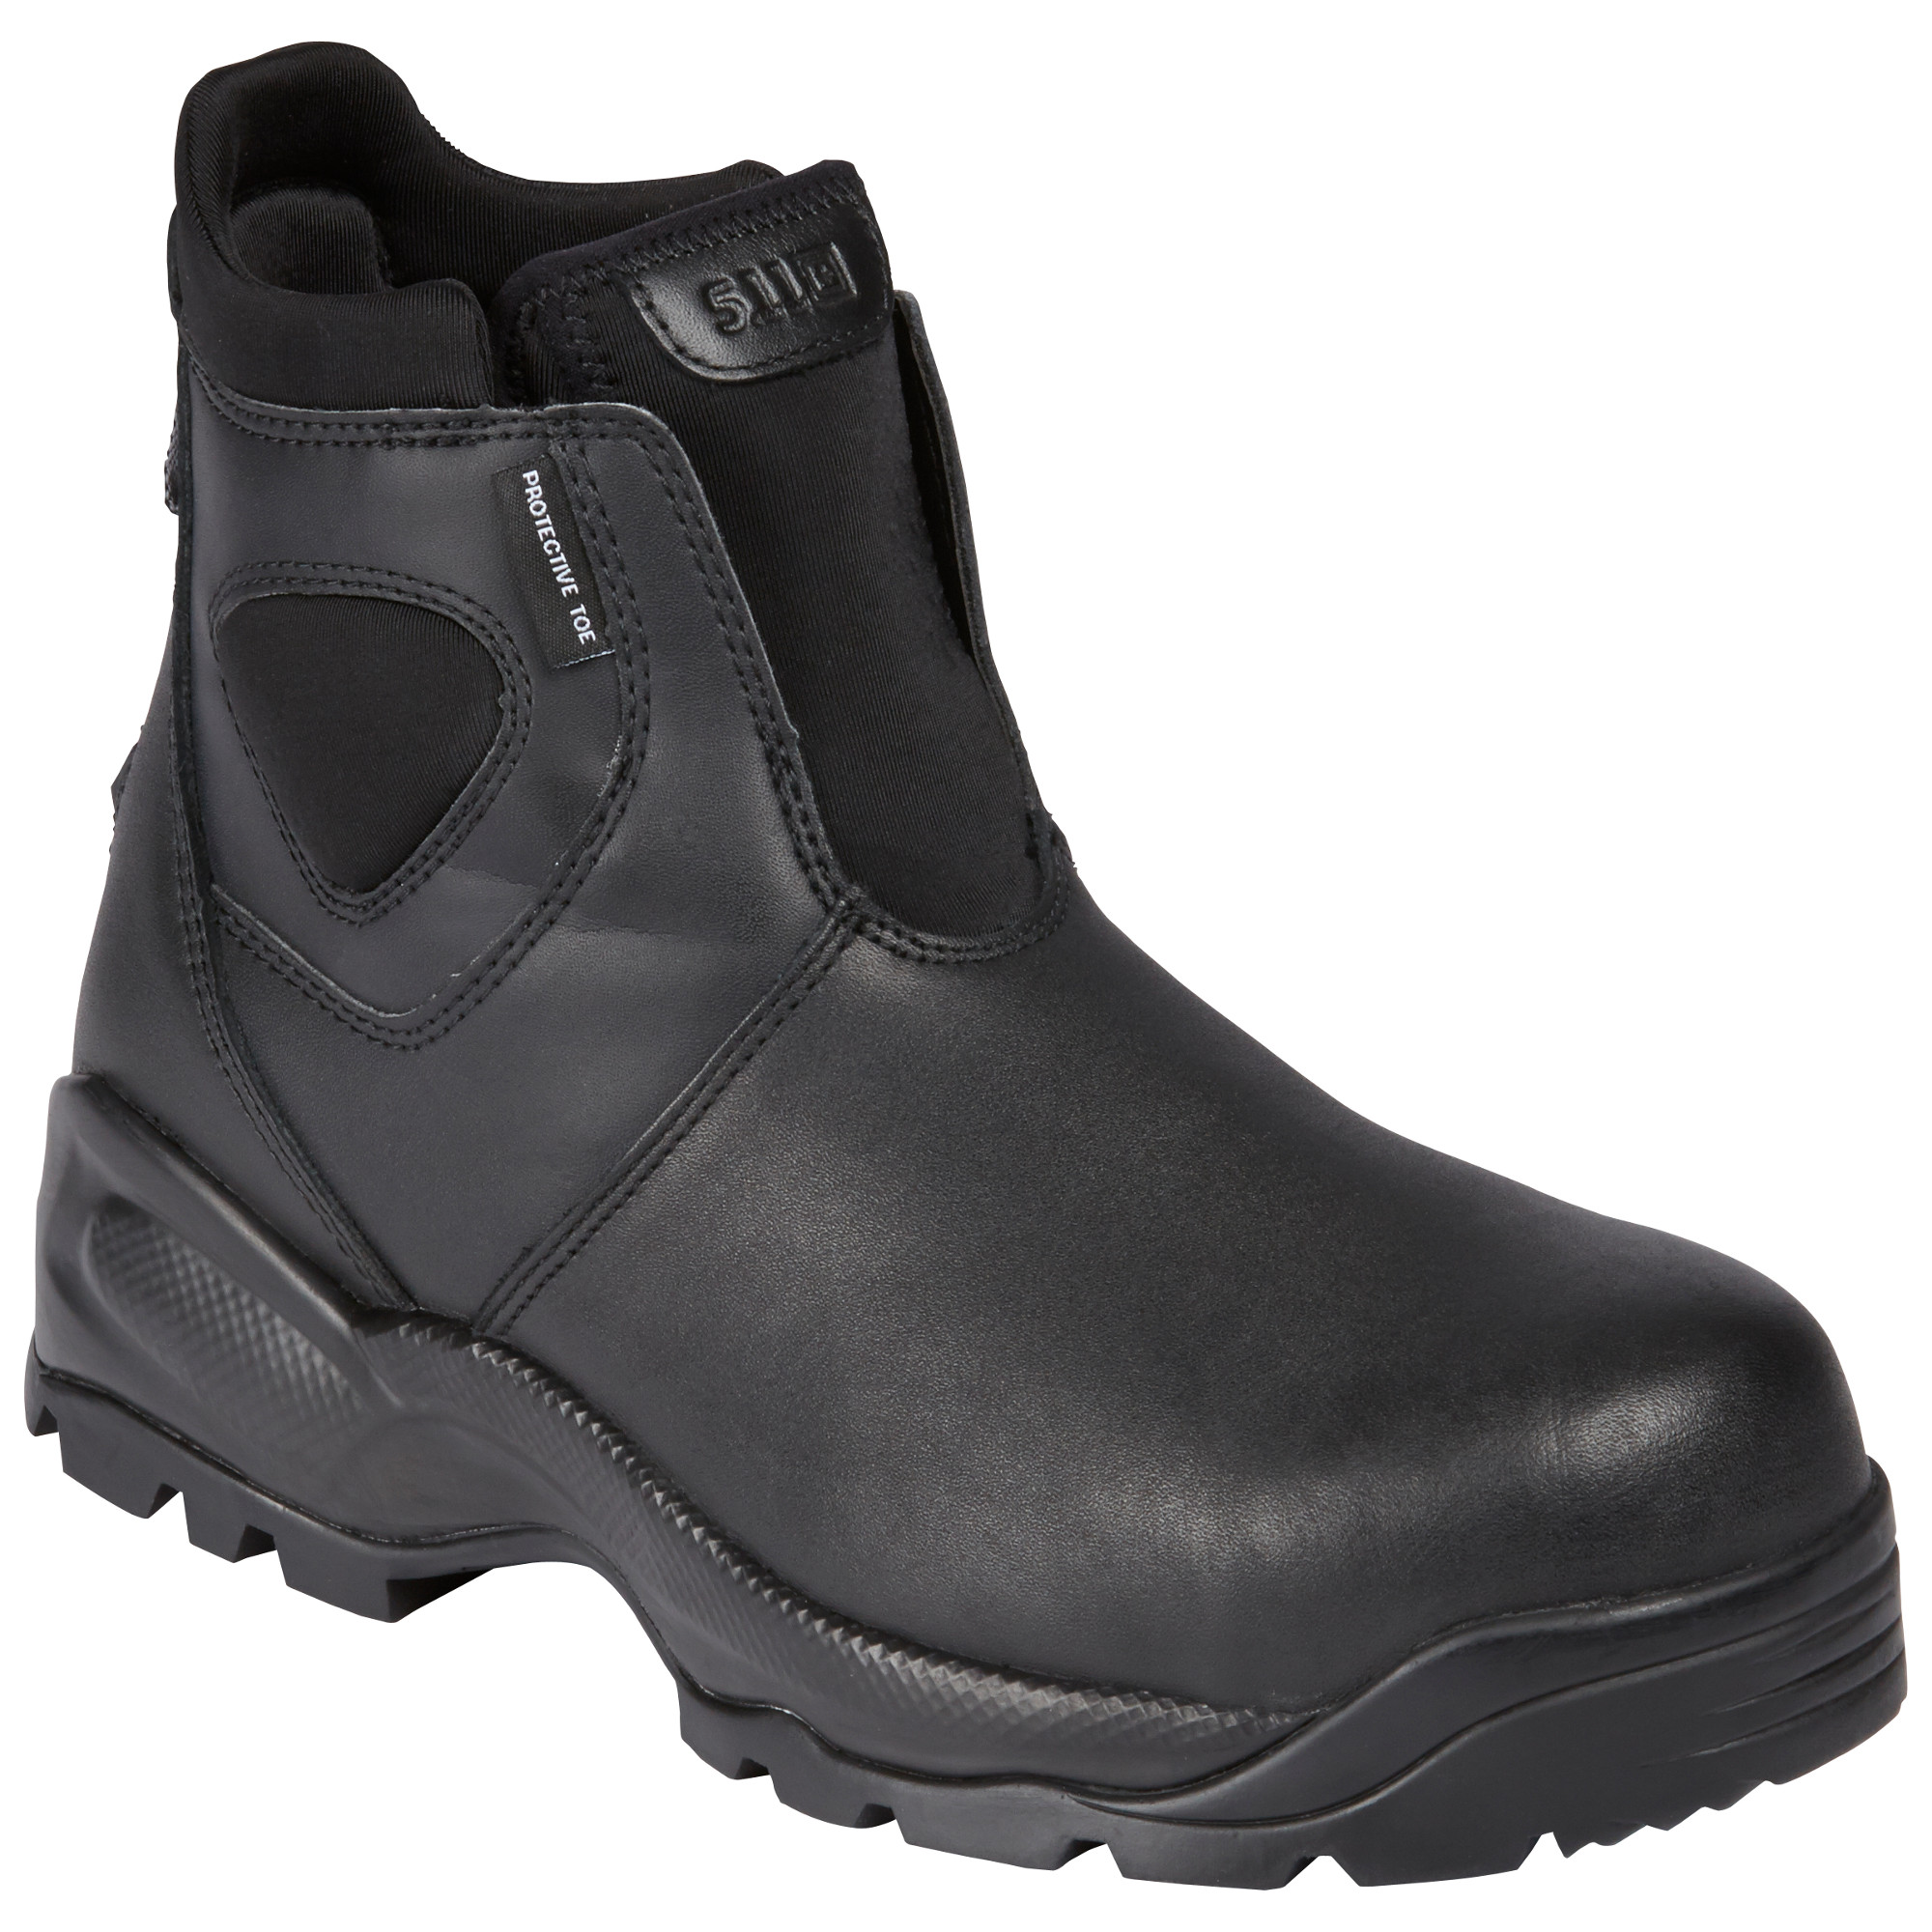 5.11 COMPANY CST Safety Toe Boot 2.0 12033